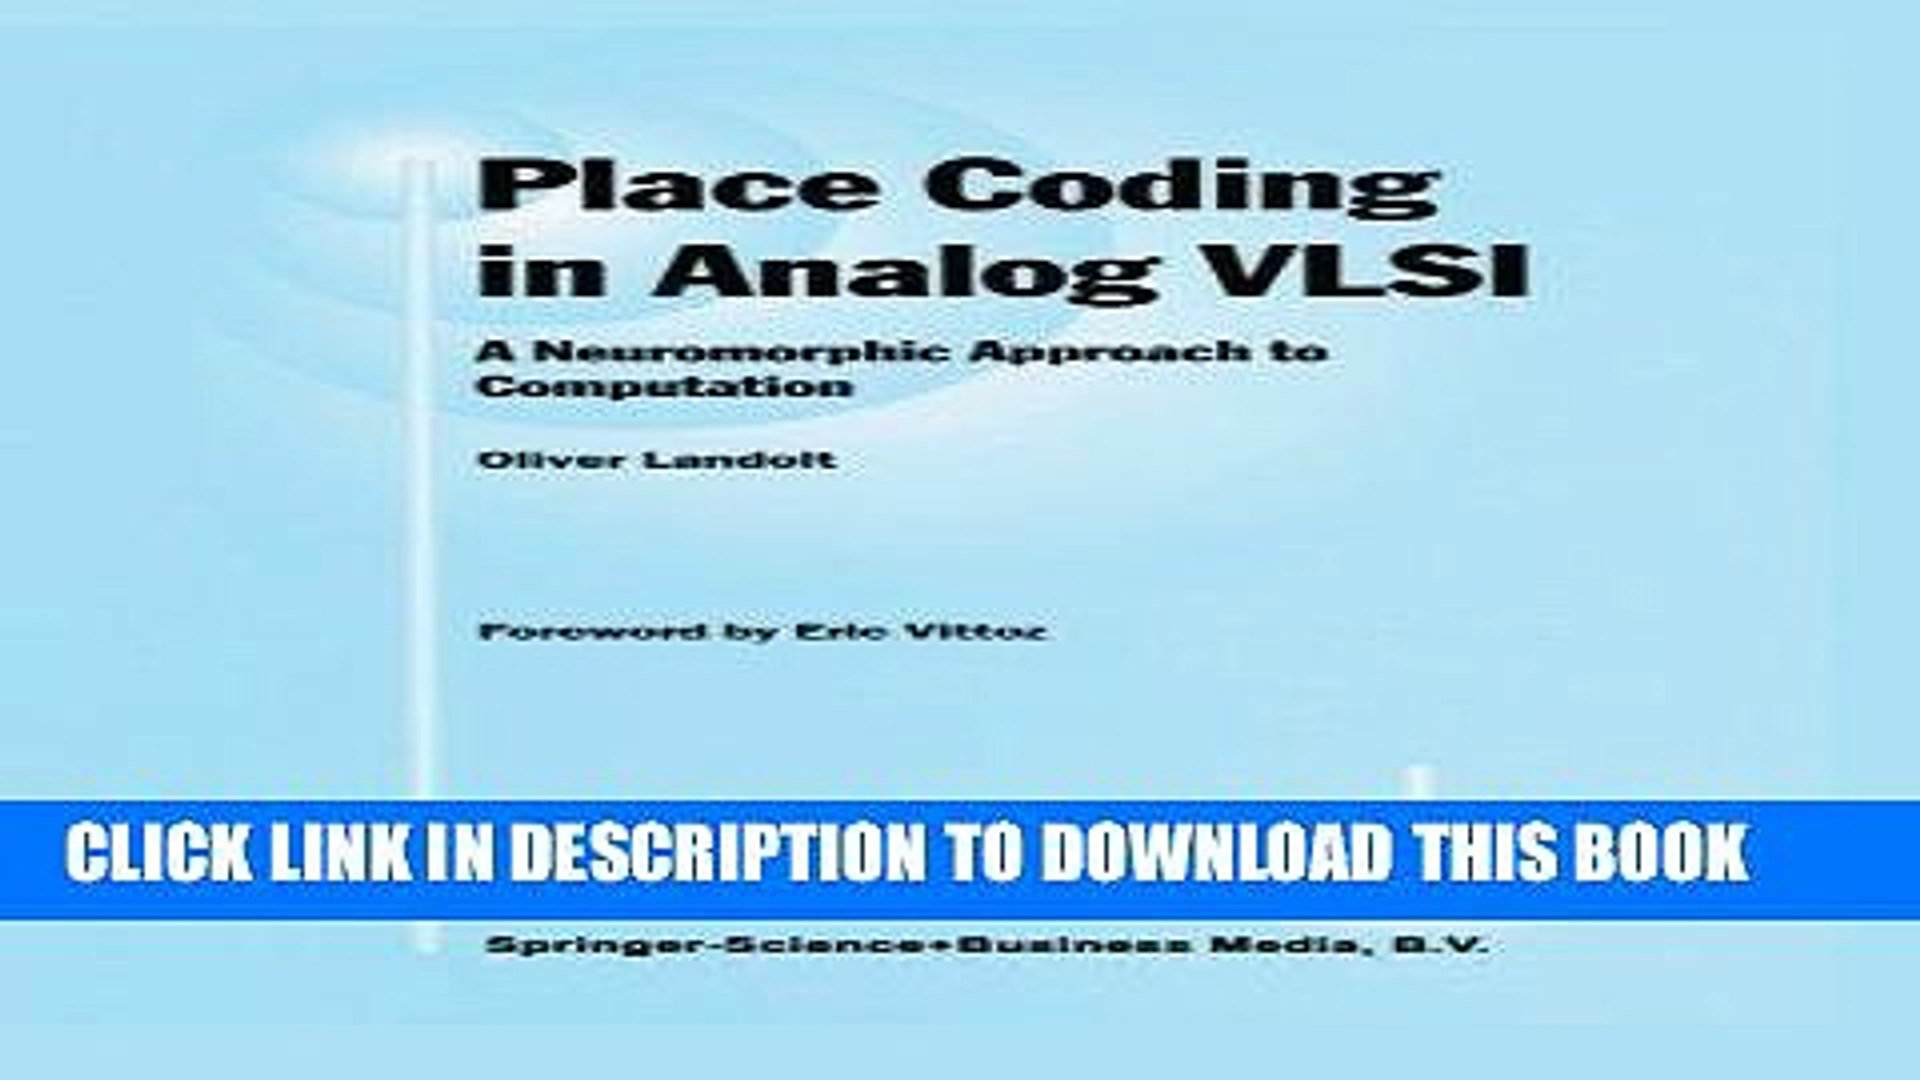 Place Coding in Analog VLSI: A Neuromorphic Approach to Computation